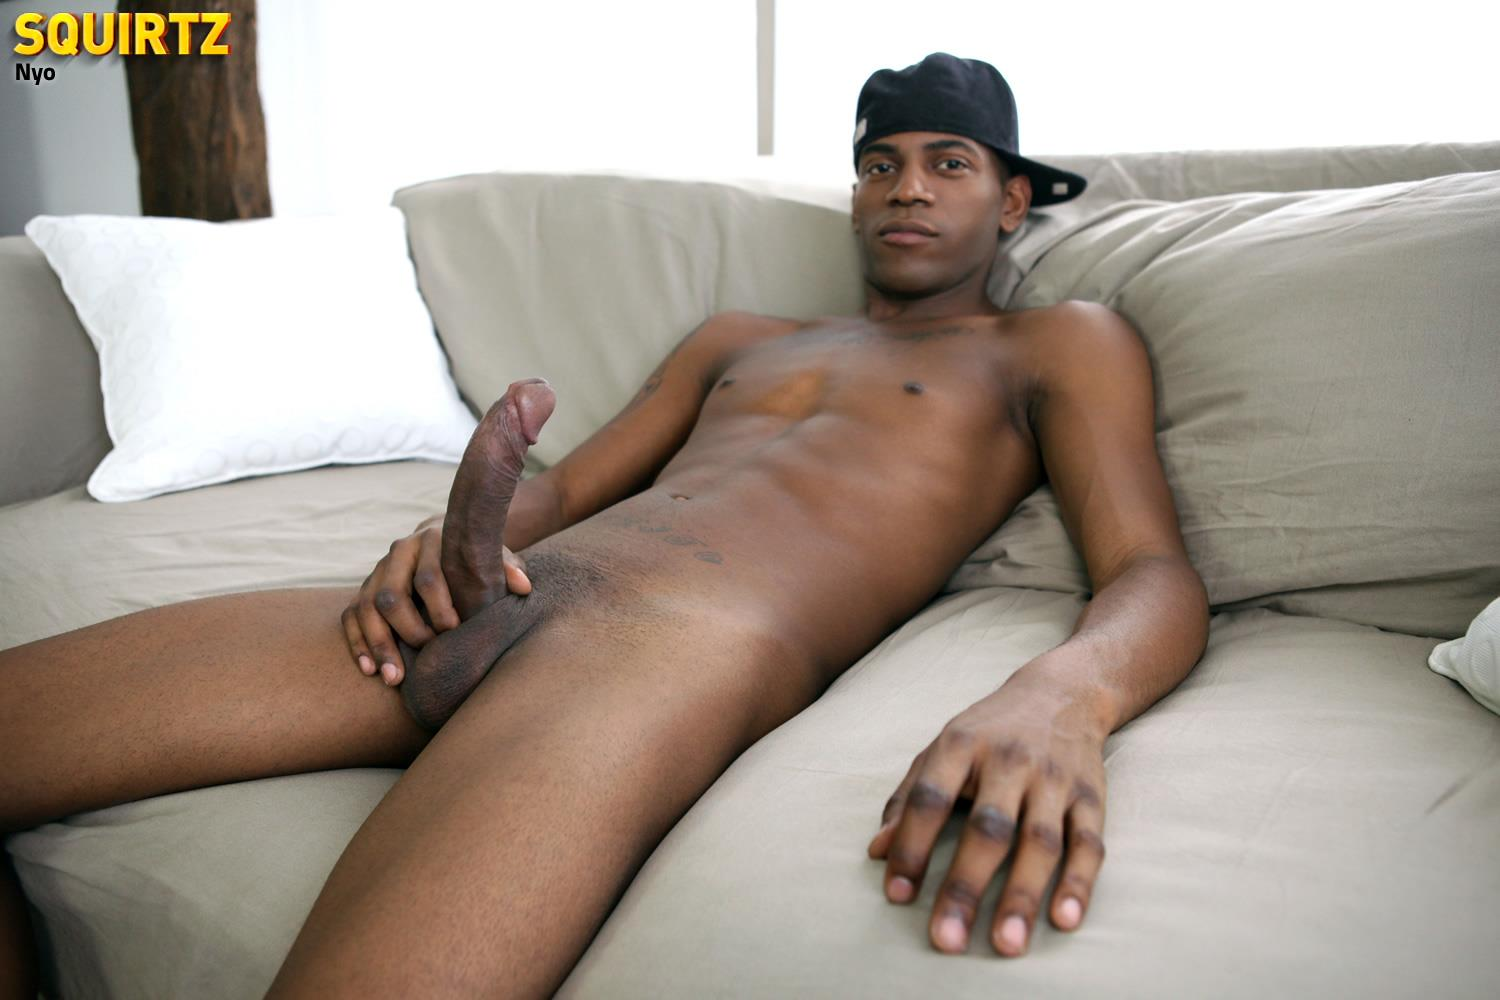 Squirtz Nyo Big Uncut Black Cock Jerking Off Cum Shot Amateur Gay Porn 20 Young Black Guy Jerking His Massive Uncut Black Cock